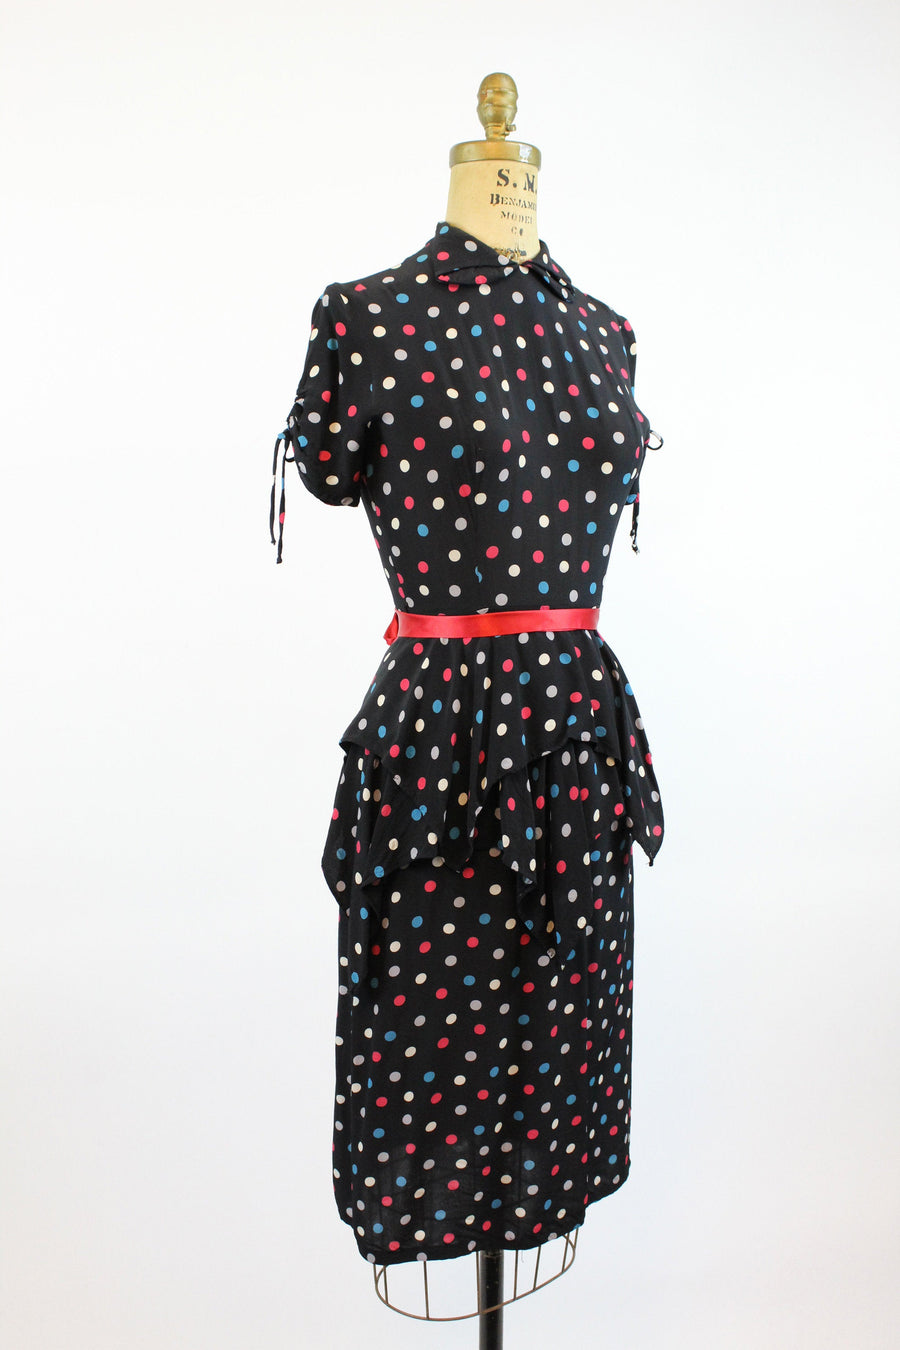 1940s Carole King rayon dress xxs | vintage polka dot peplum dress | new in